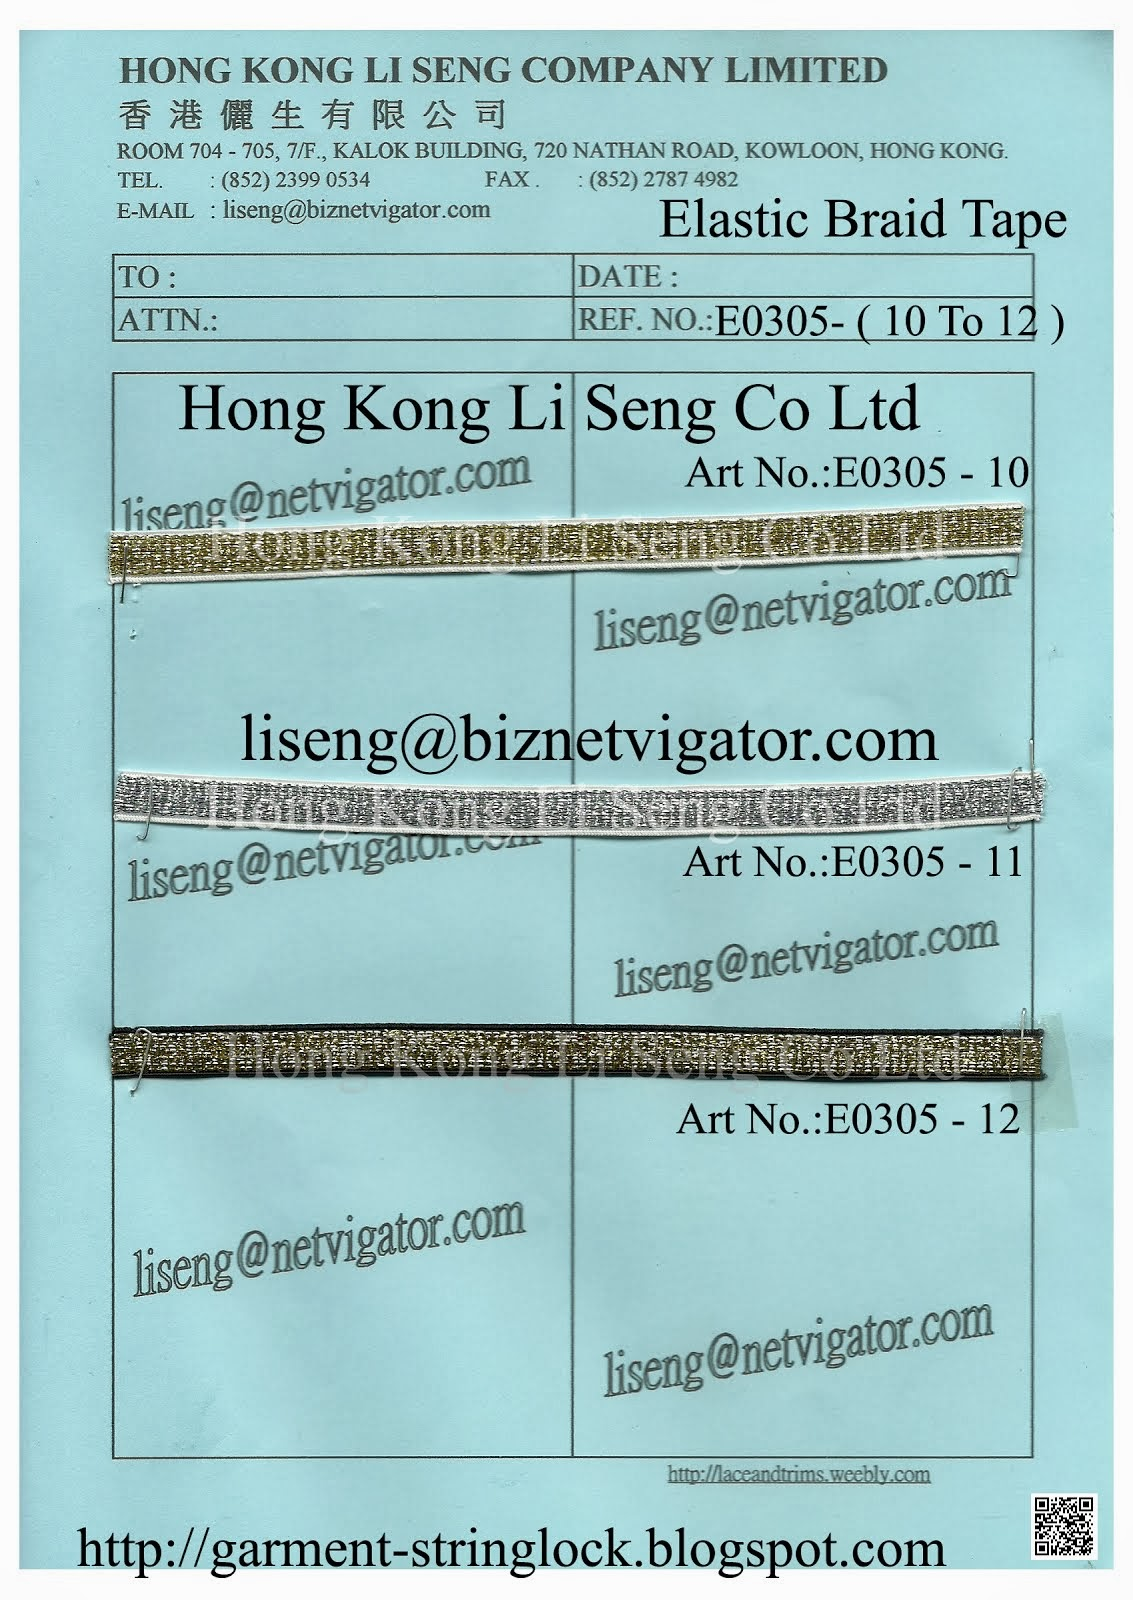 Elastic Braid Tape Manufacturer - Hong Kong Li Seng Co Ltd